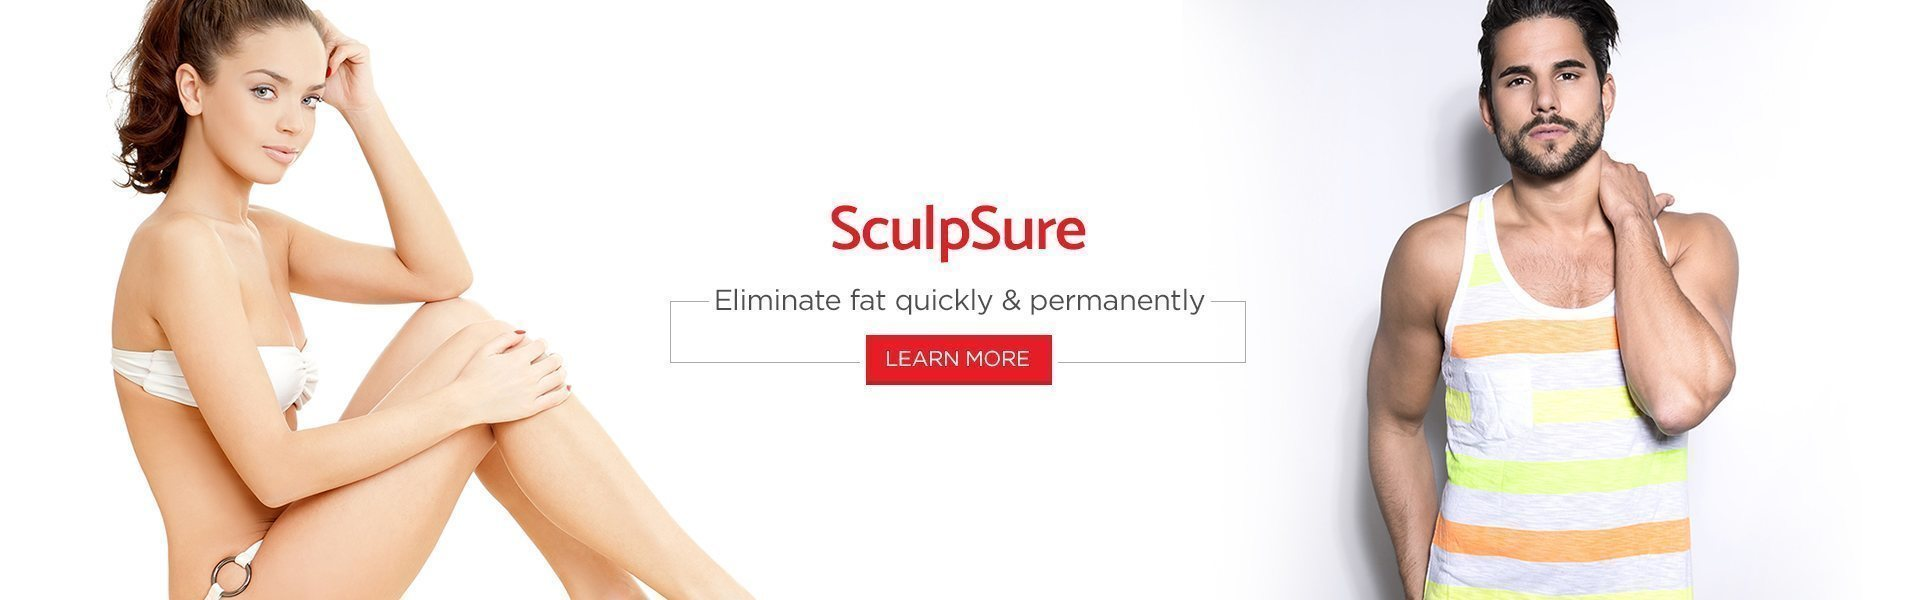 sculpSureSlide-2